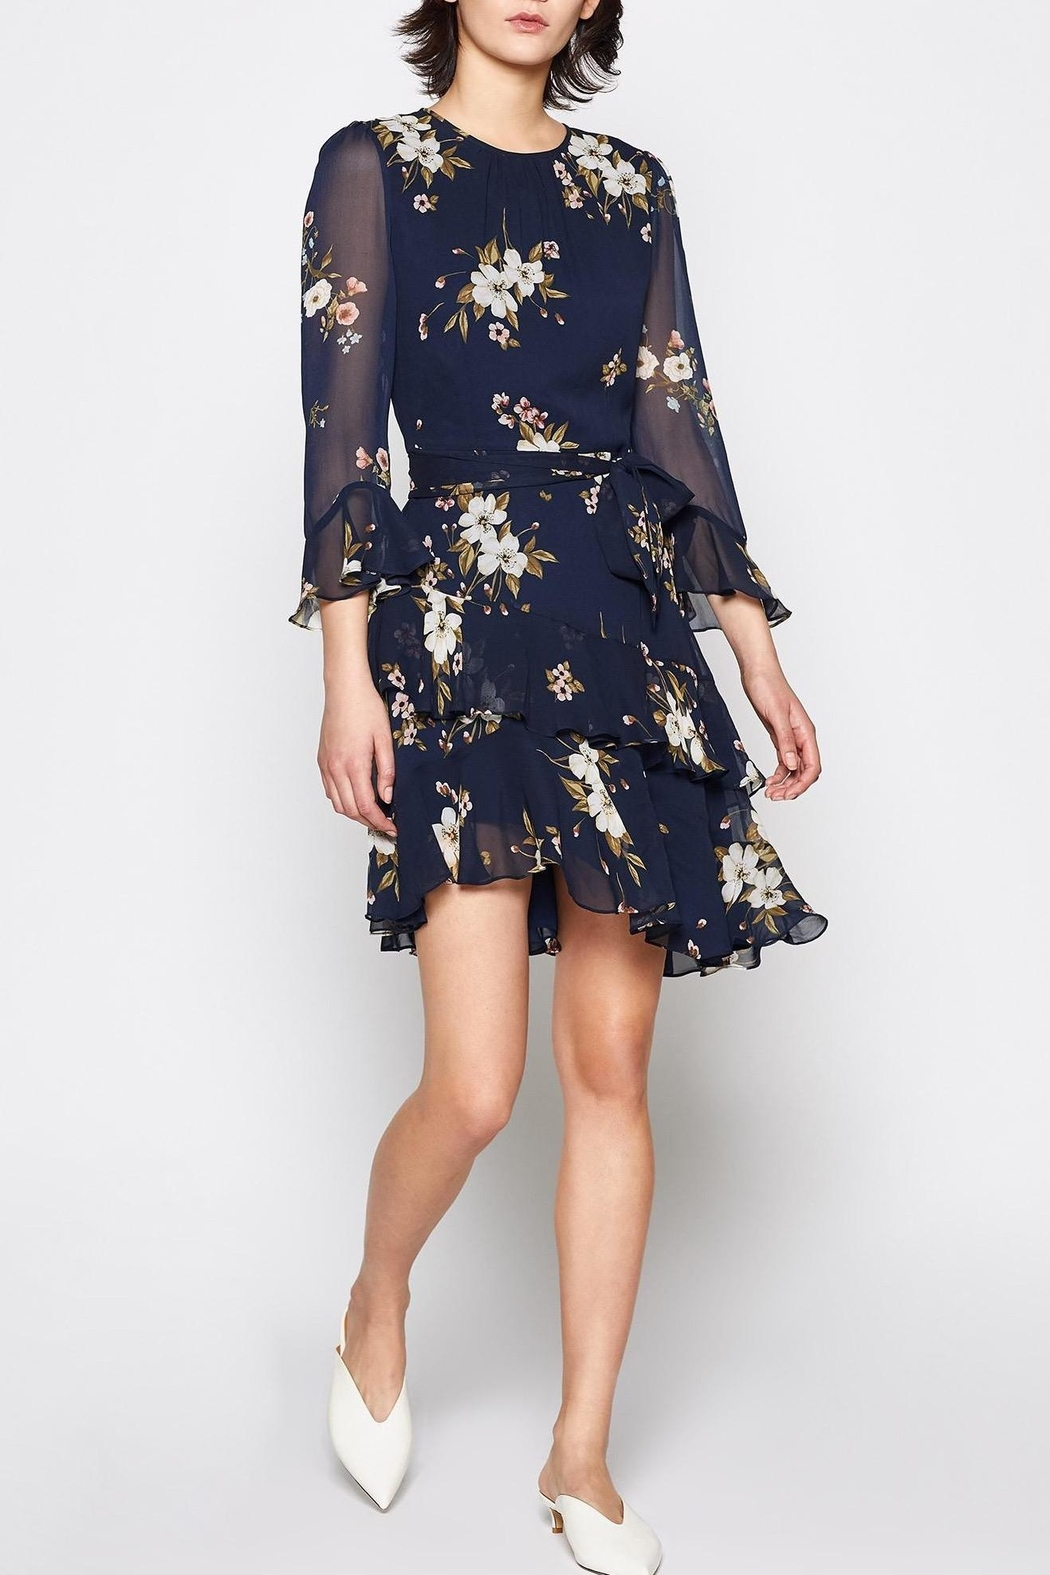 Joie Kayne Silk Dress - Main Image